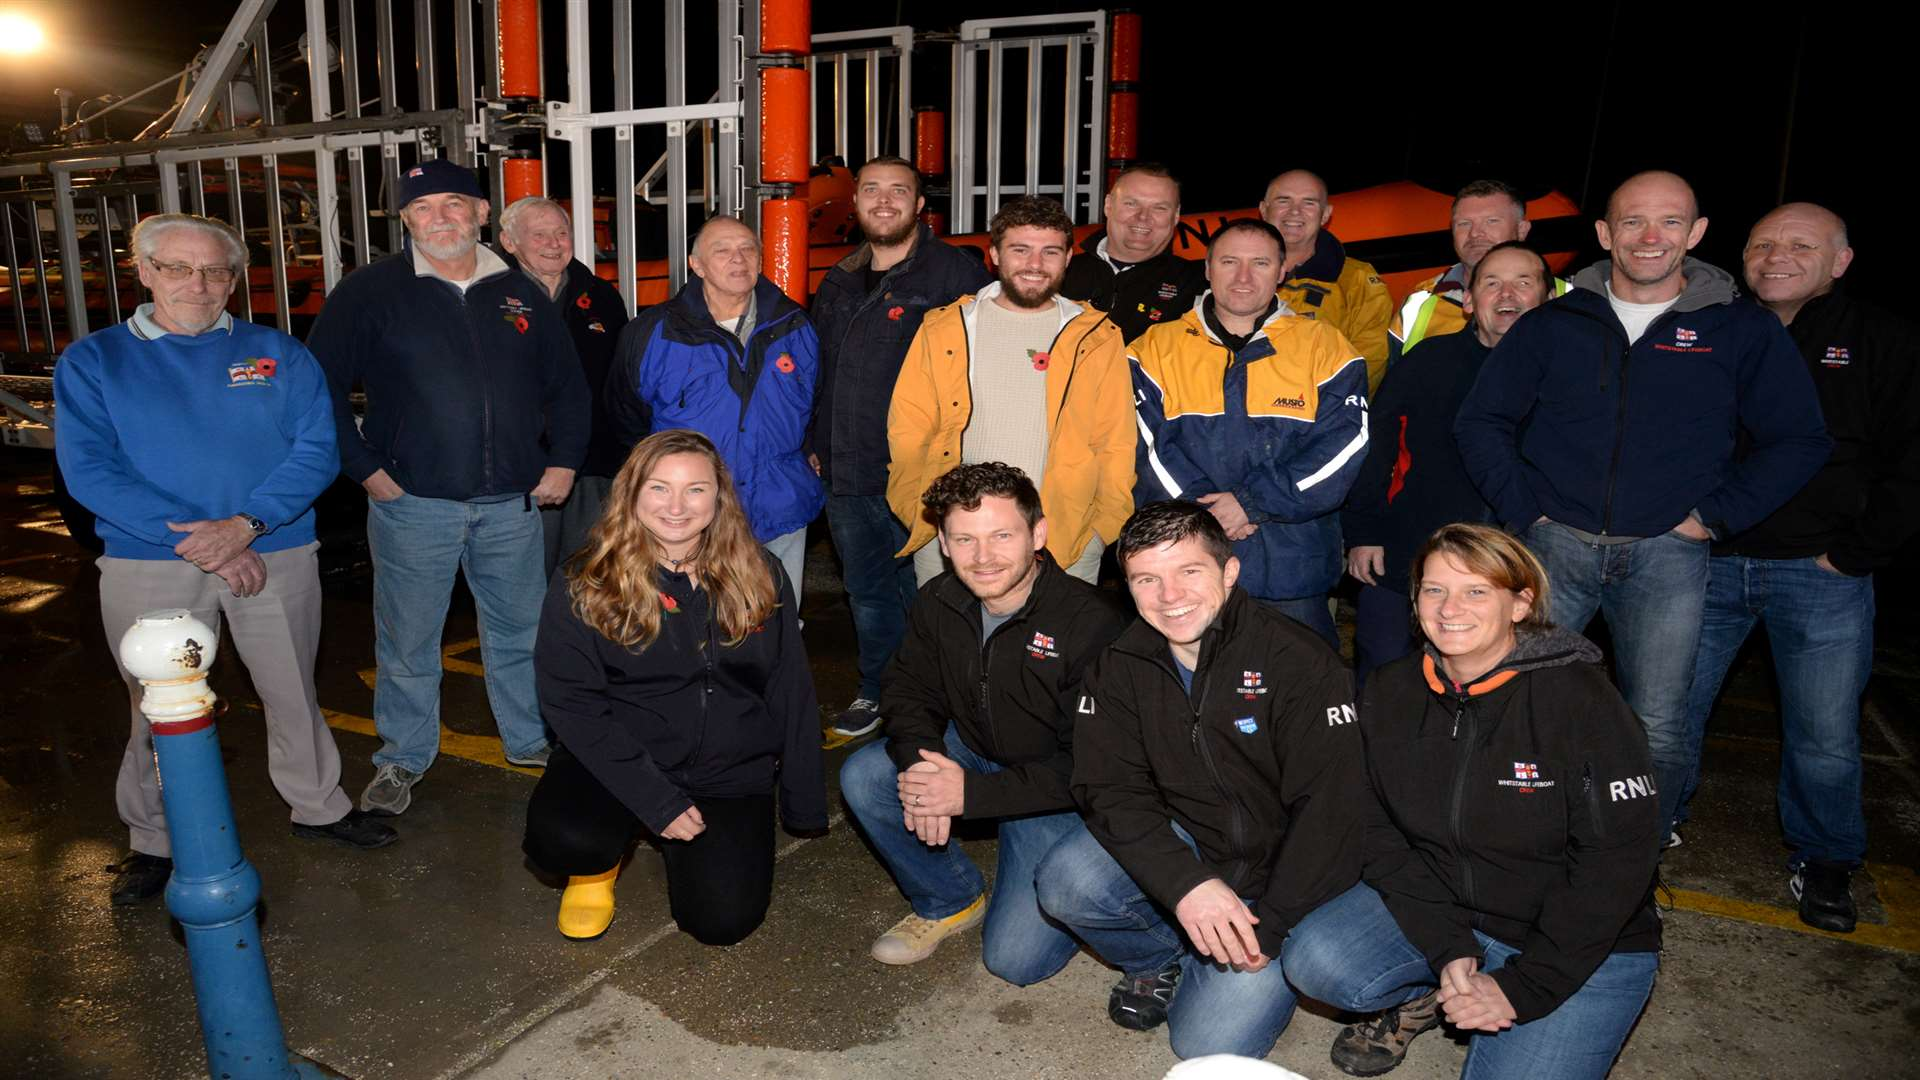 Alex visited more than 200 lifeboat stations